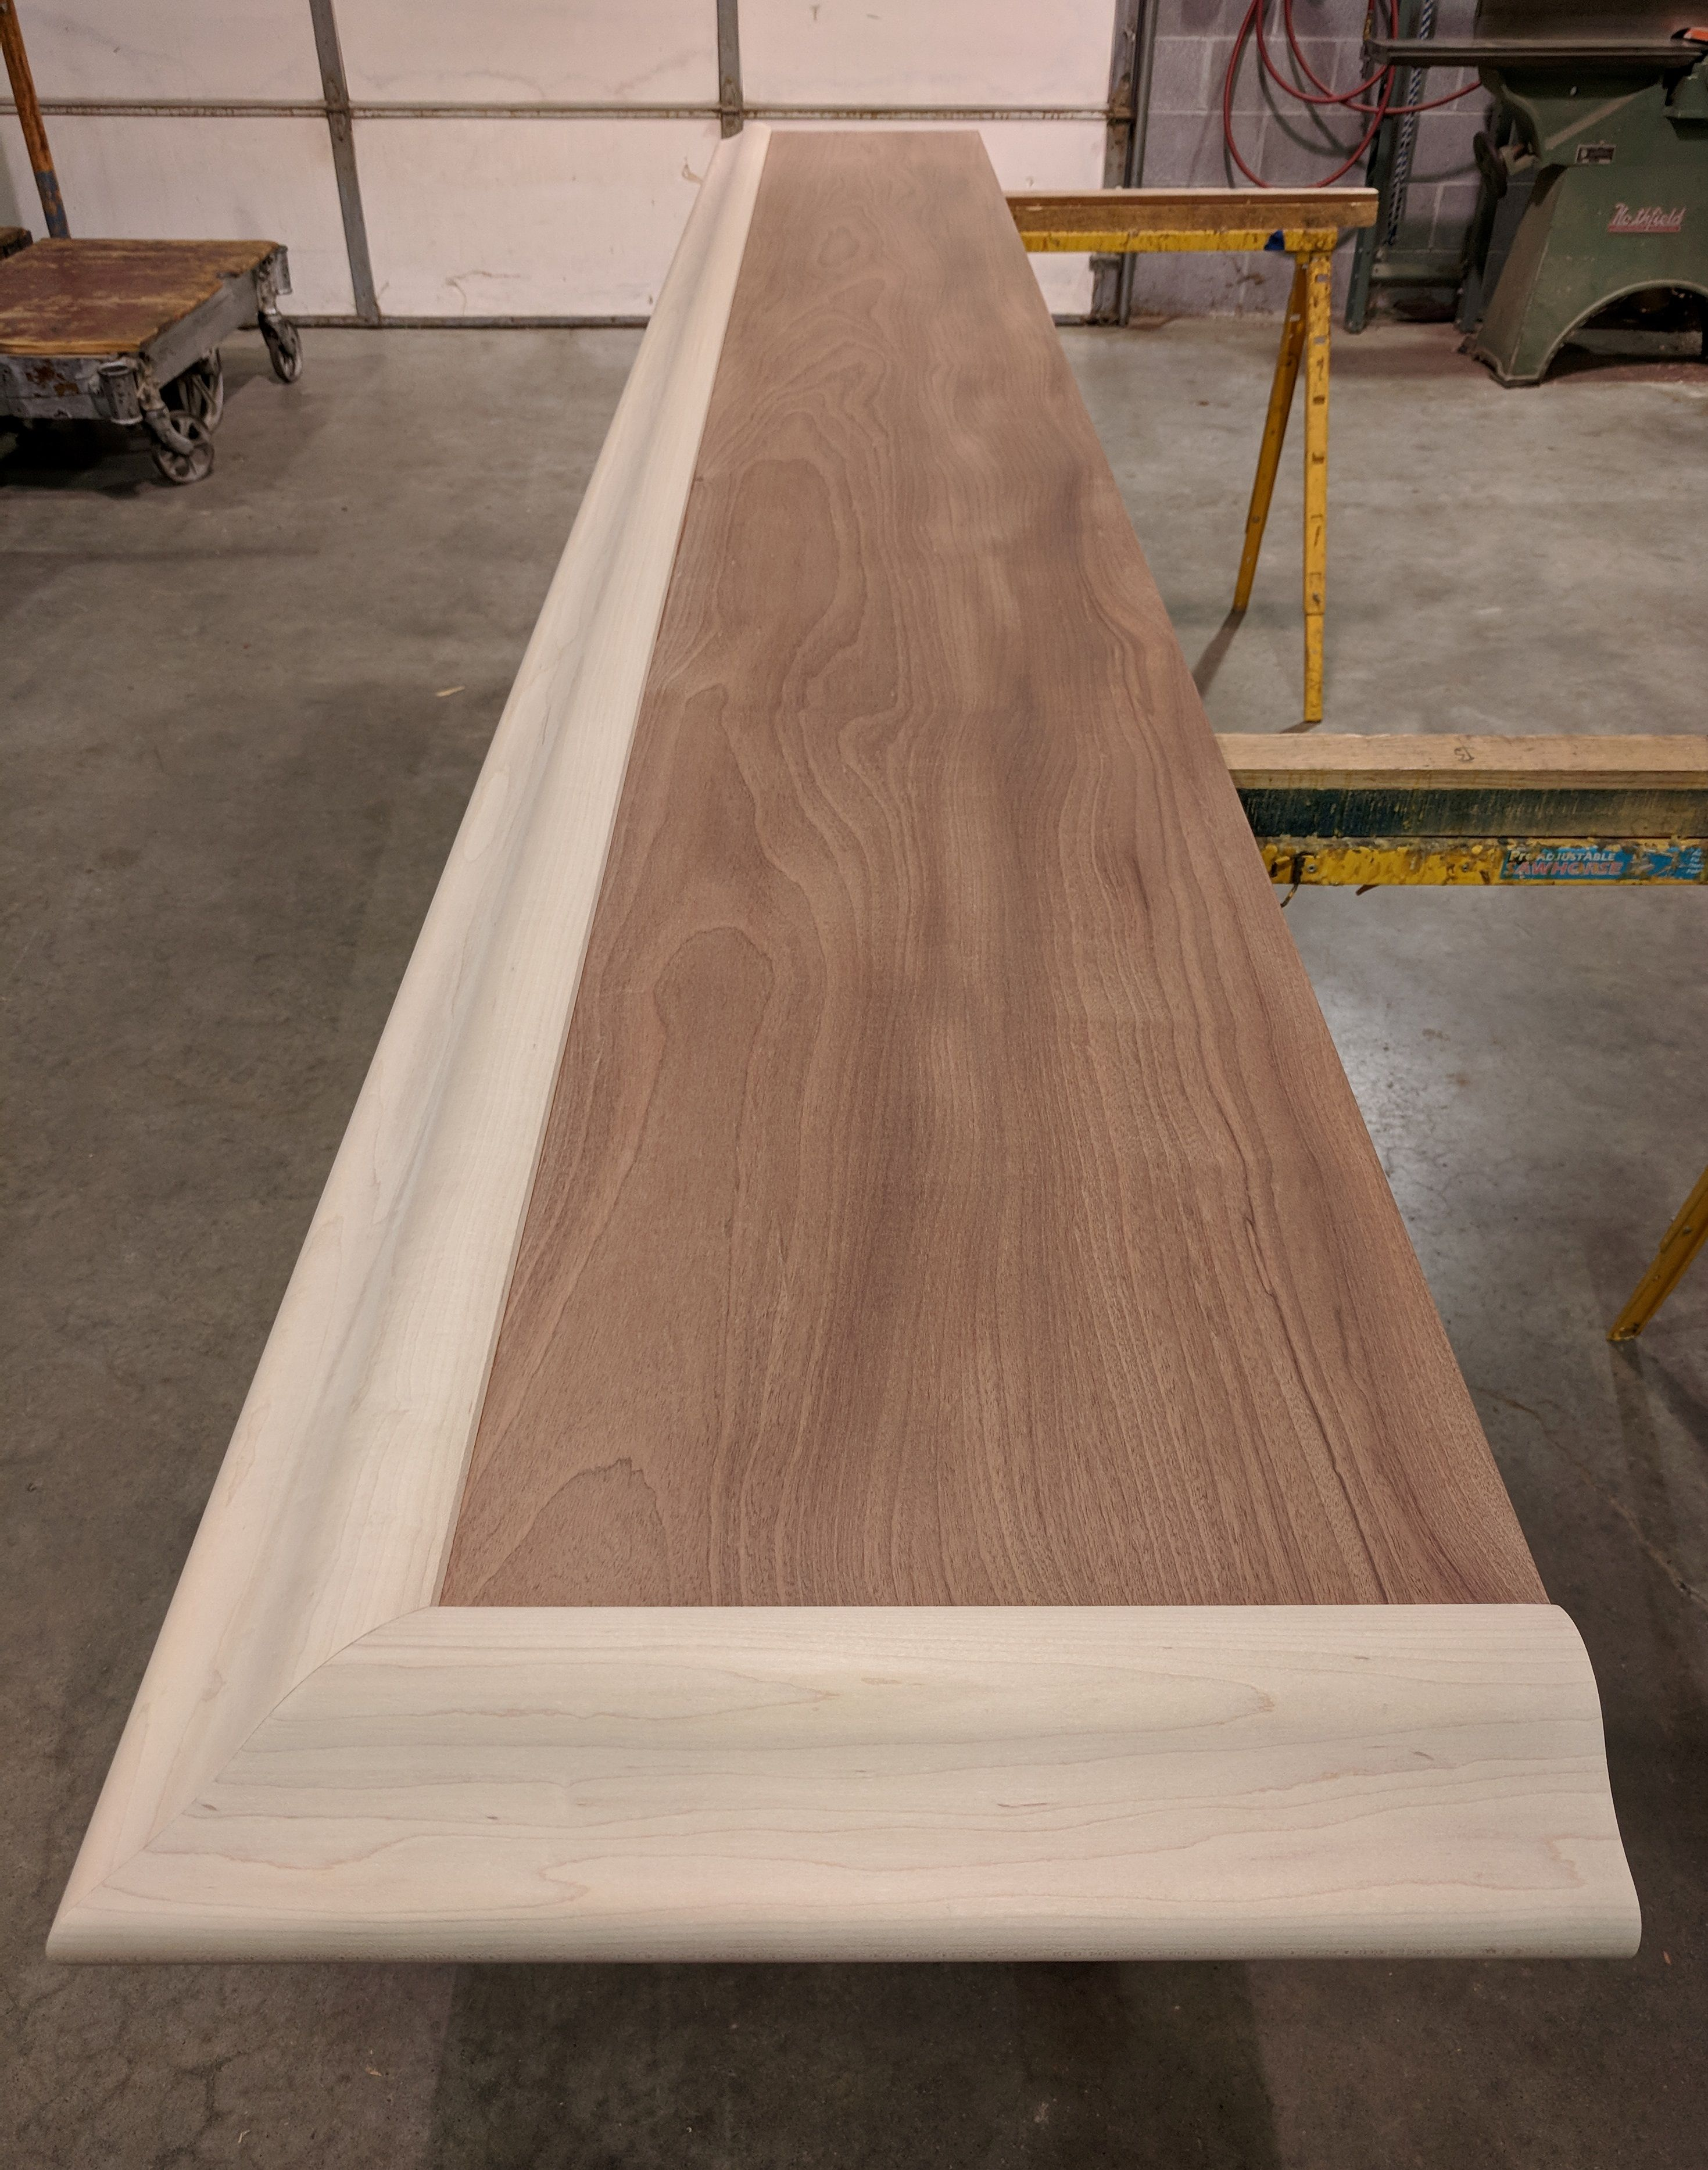 Check Out This Custom Home Bar Top Just Out Of Our Shop The Main Top Is A One Piece Sapele Mahogany Slab Trimmed Custom Home Bars Wooden Bar Top Diy